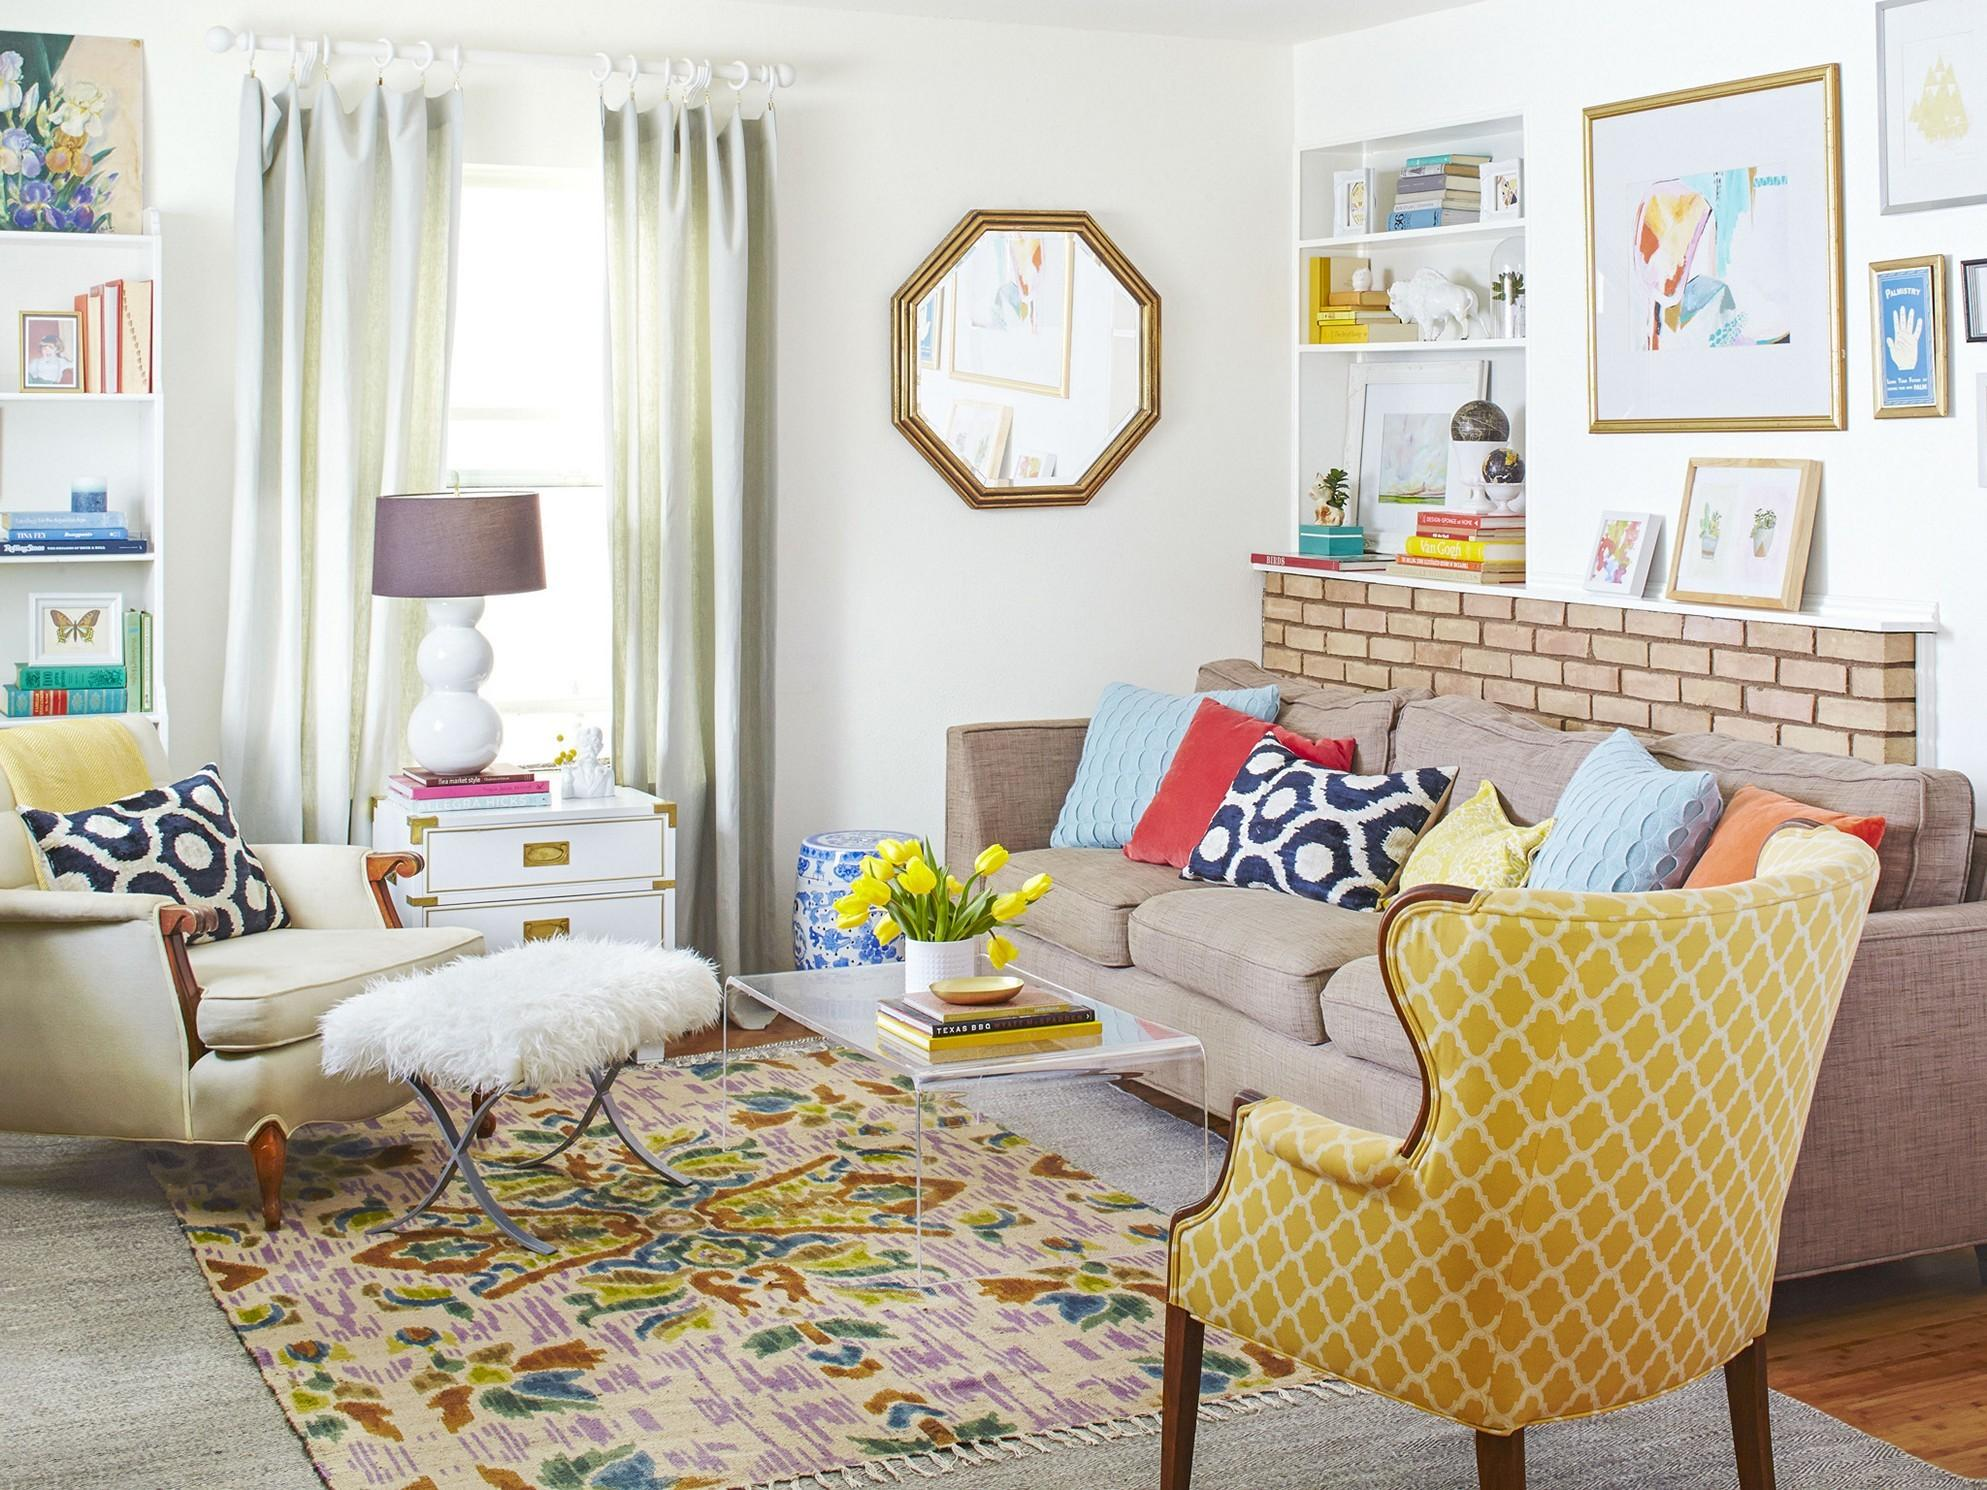 Stylish Eclectic Living Rooms That Everyone Should See Fantastic Pictures Decoratorist